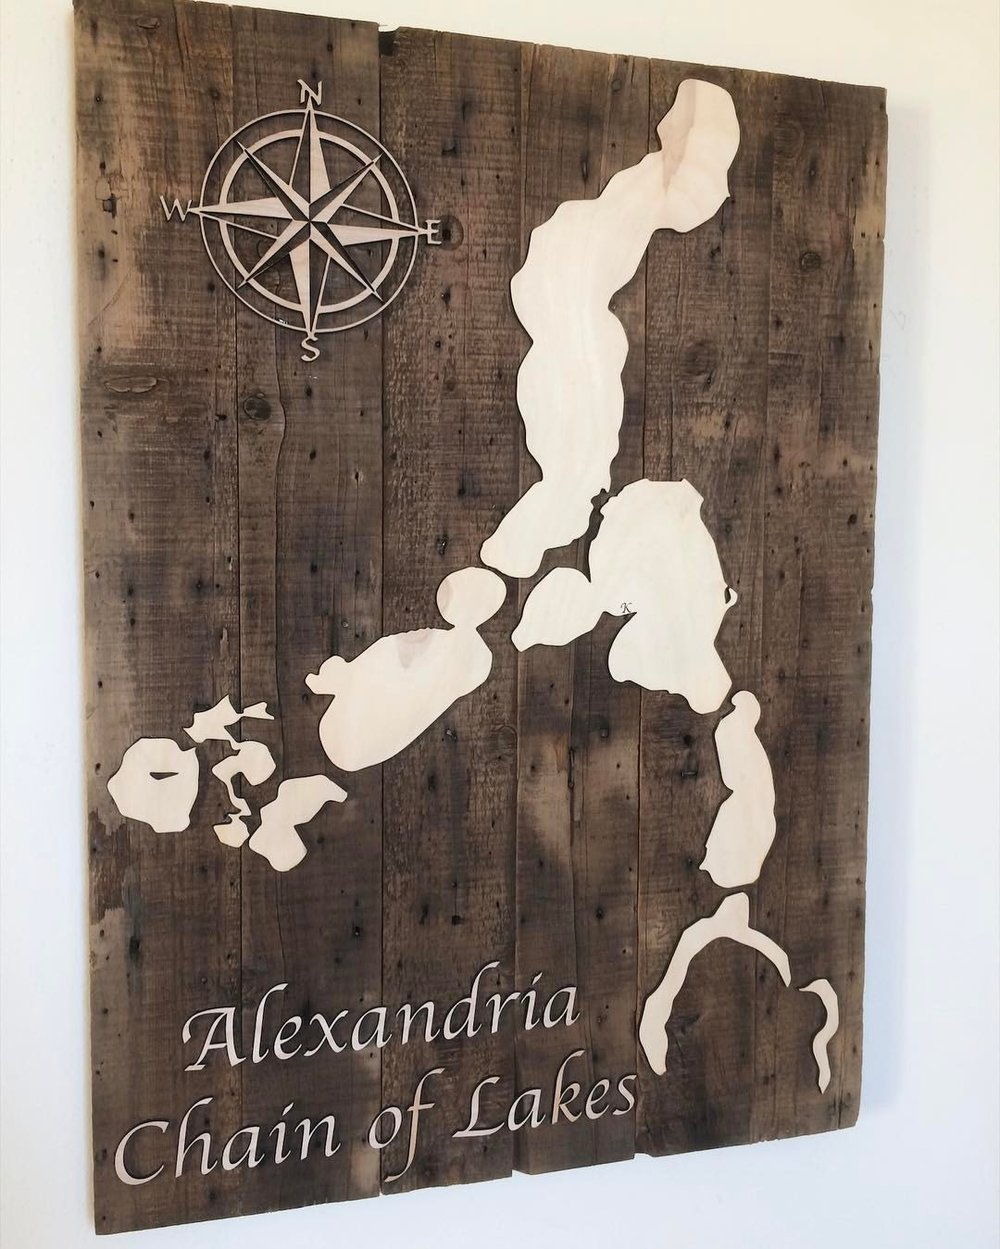 Alexandria Chain of Lakes.jpg